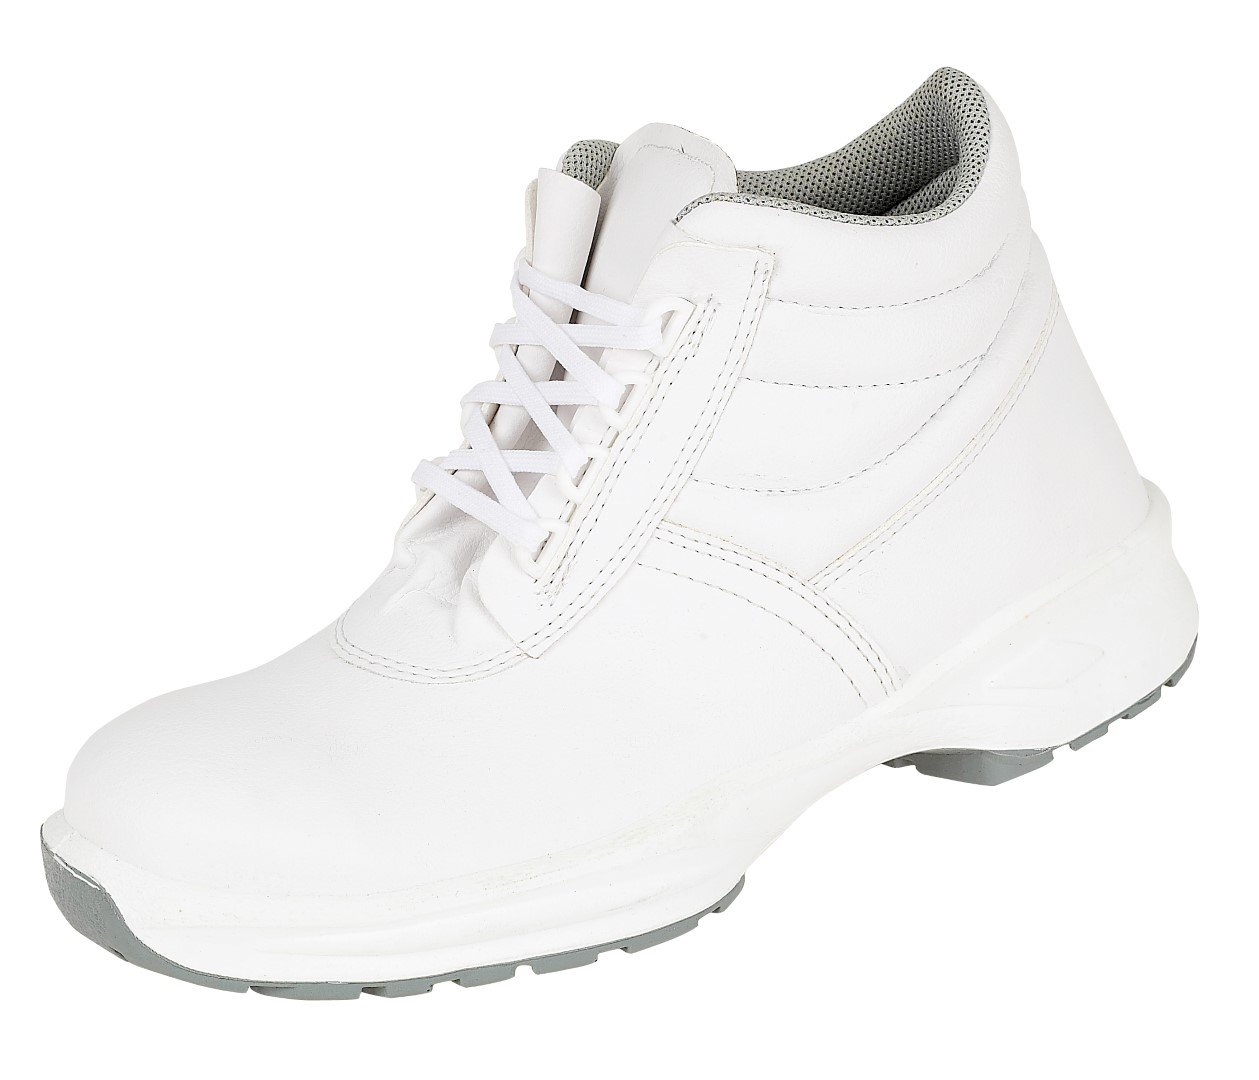 36 EU 3 White 004 Himalayan Unisex Adults 9952 Safety Shoes,